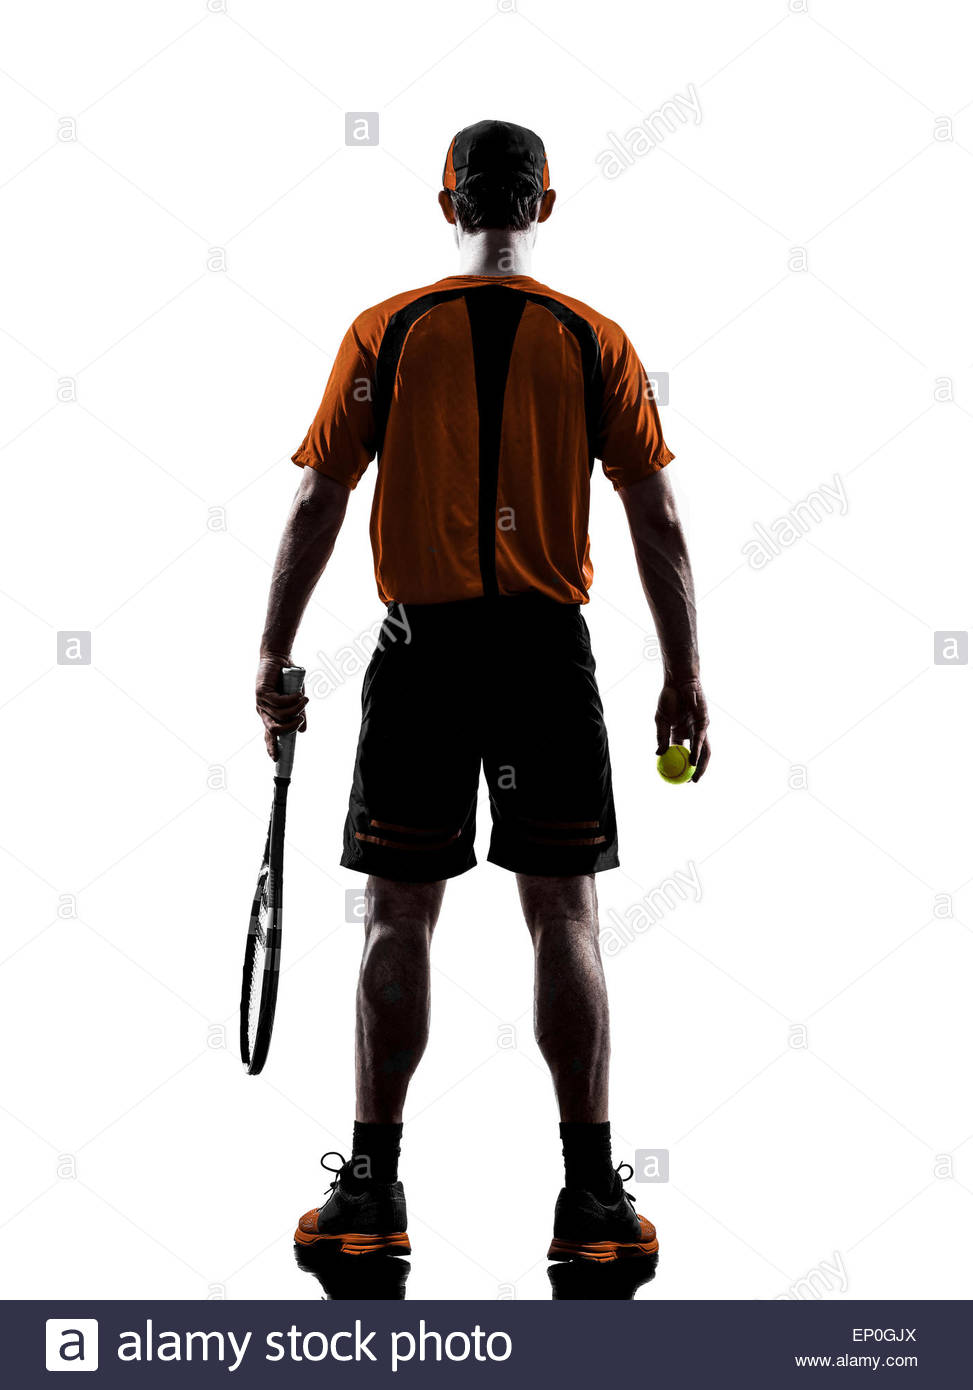 973x1390e Man Tennis Player Back Rear View In Silhouette Isolated